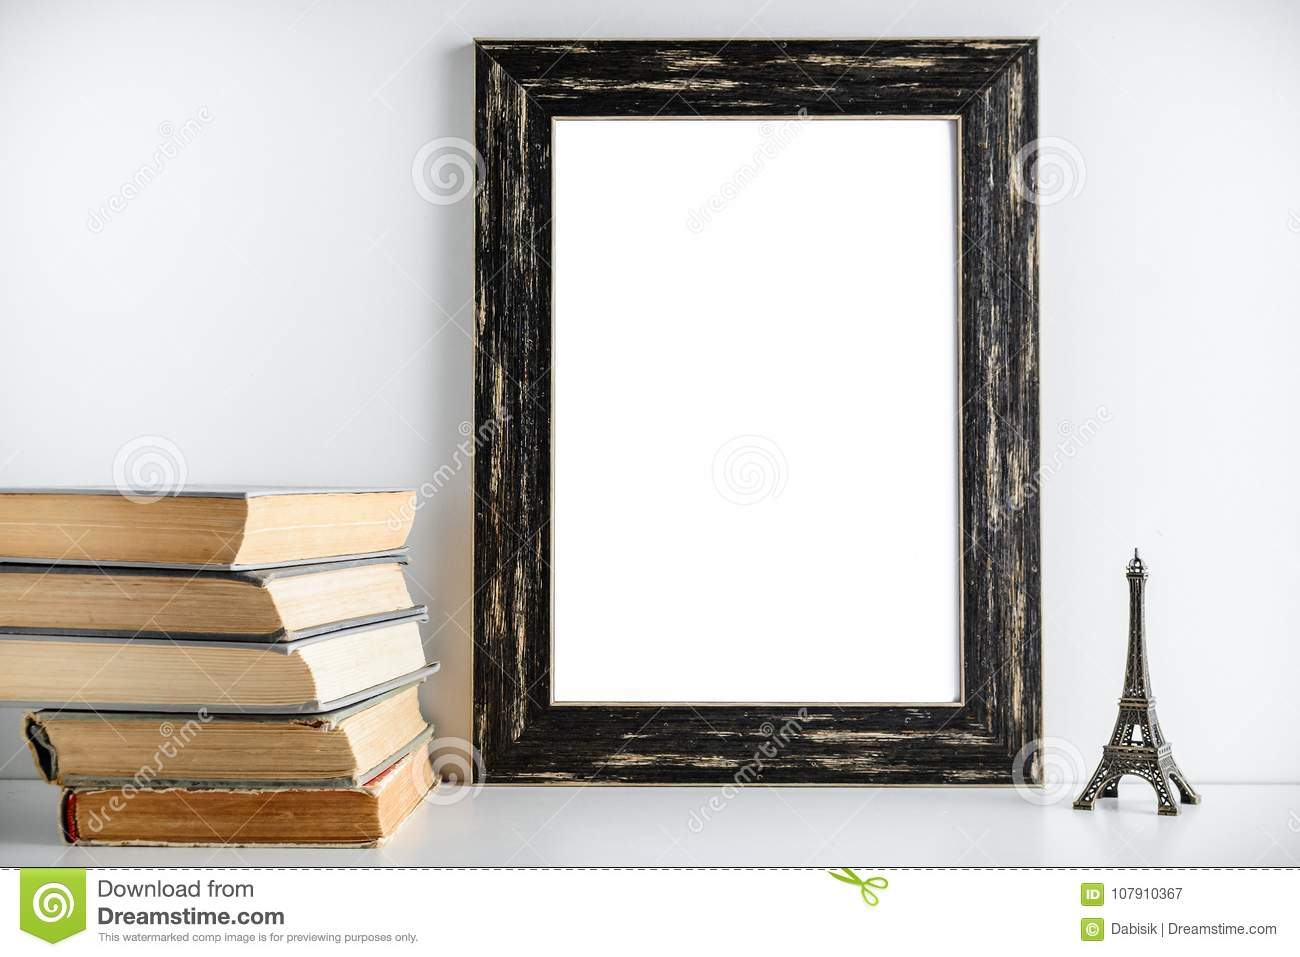 Black frame layout. Toy tower and old books near the frame on a